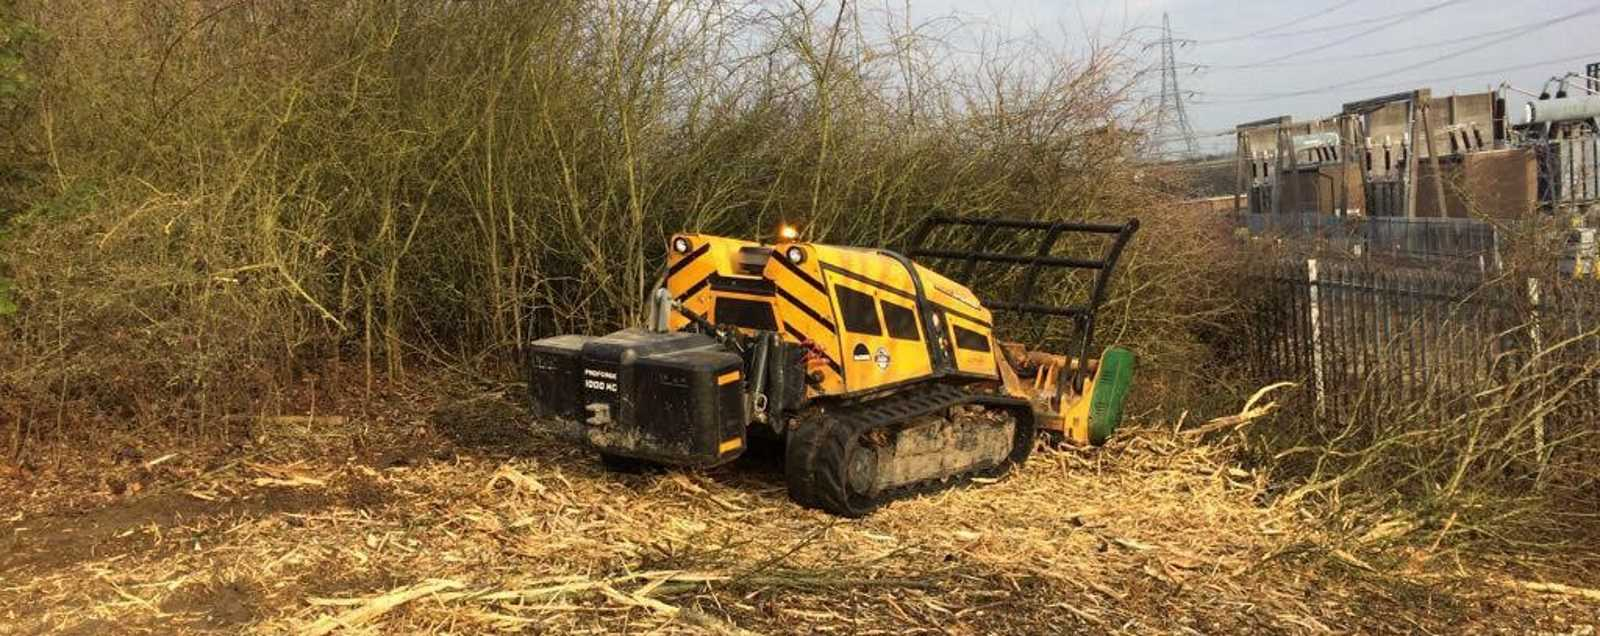 Forestry and Site Clearance Services in Burton on Trent